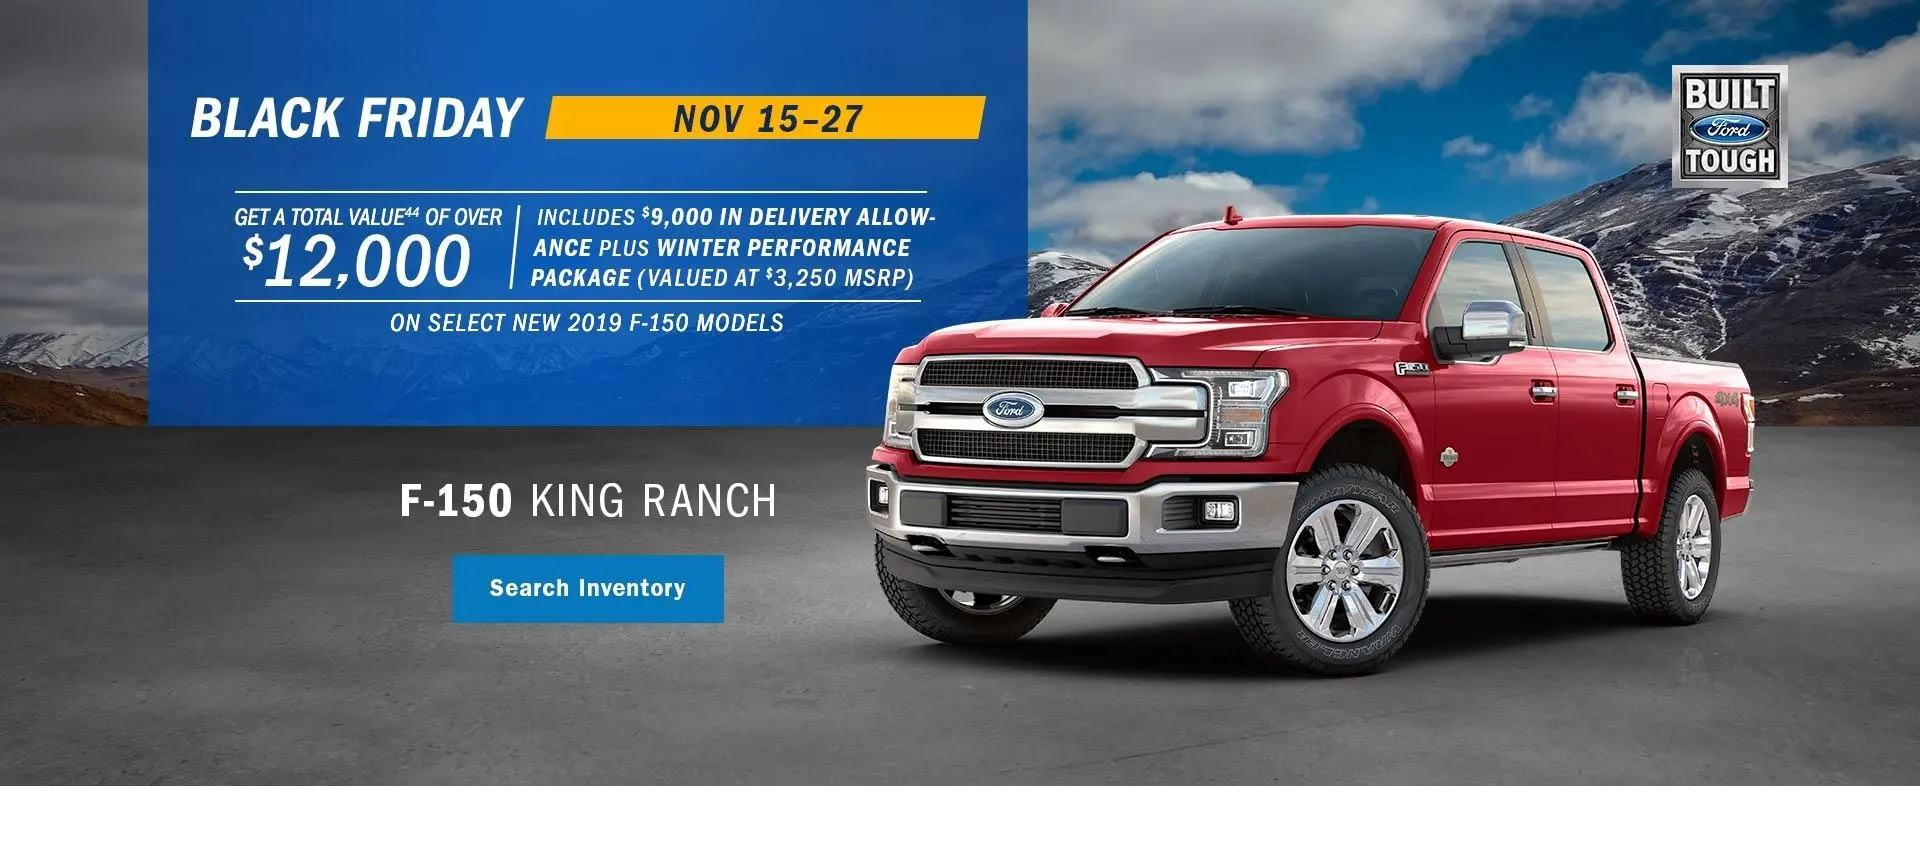 Mainland Ford Vancouver Black Friday Deals